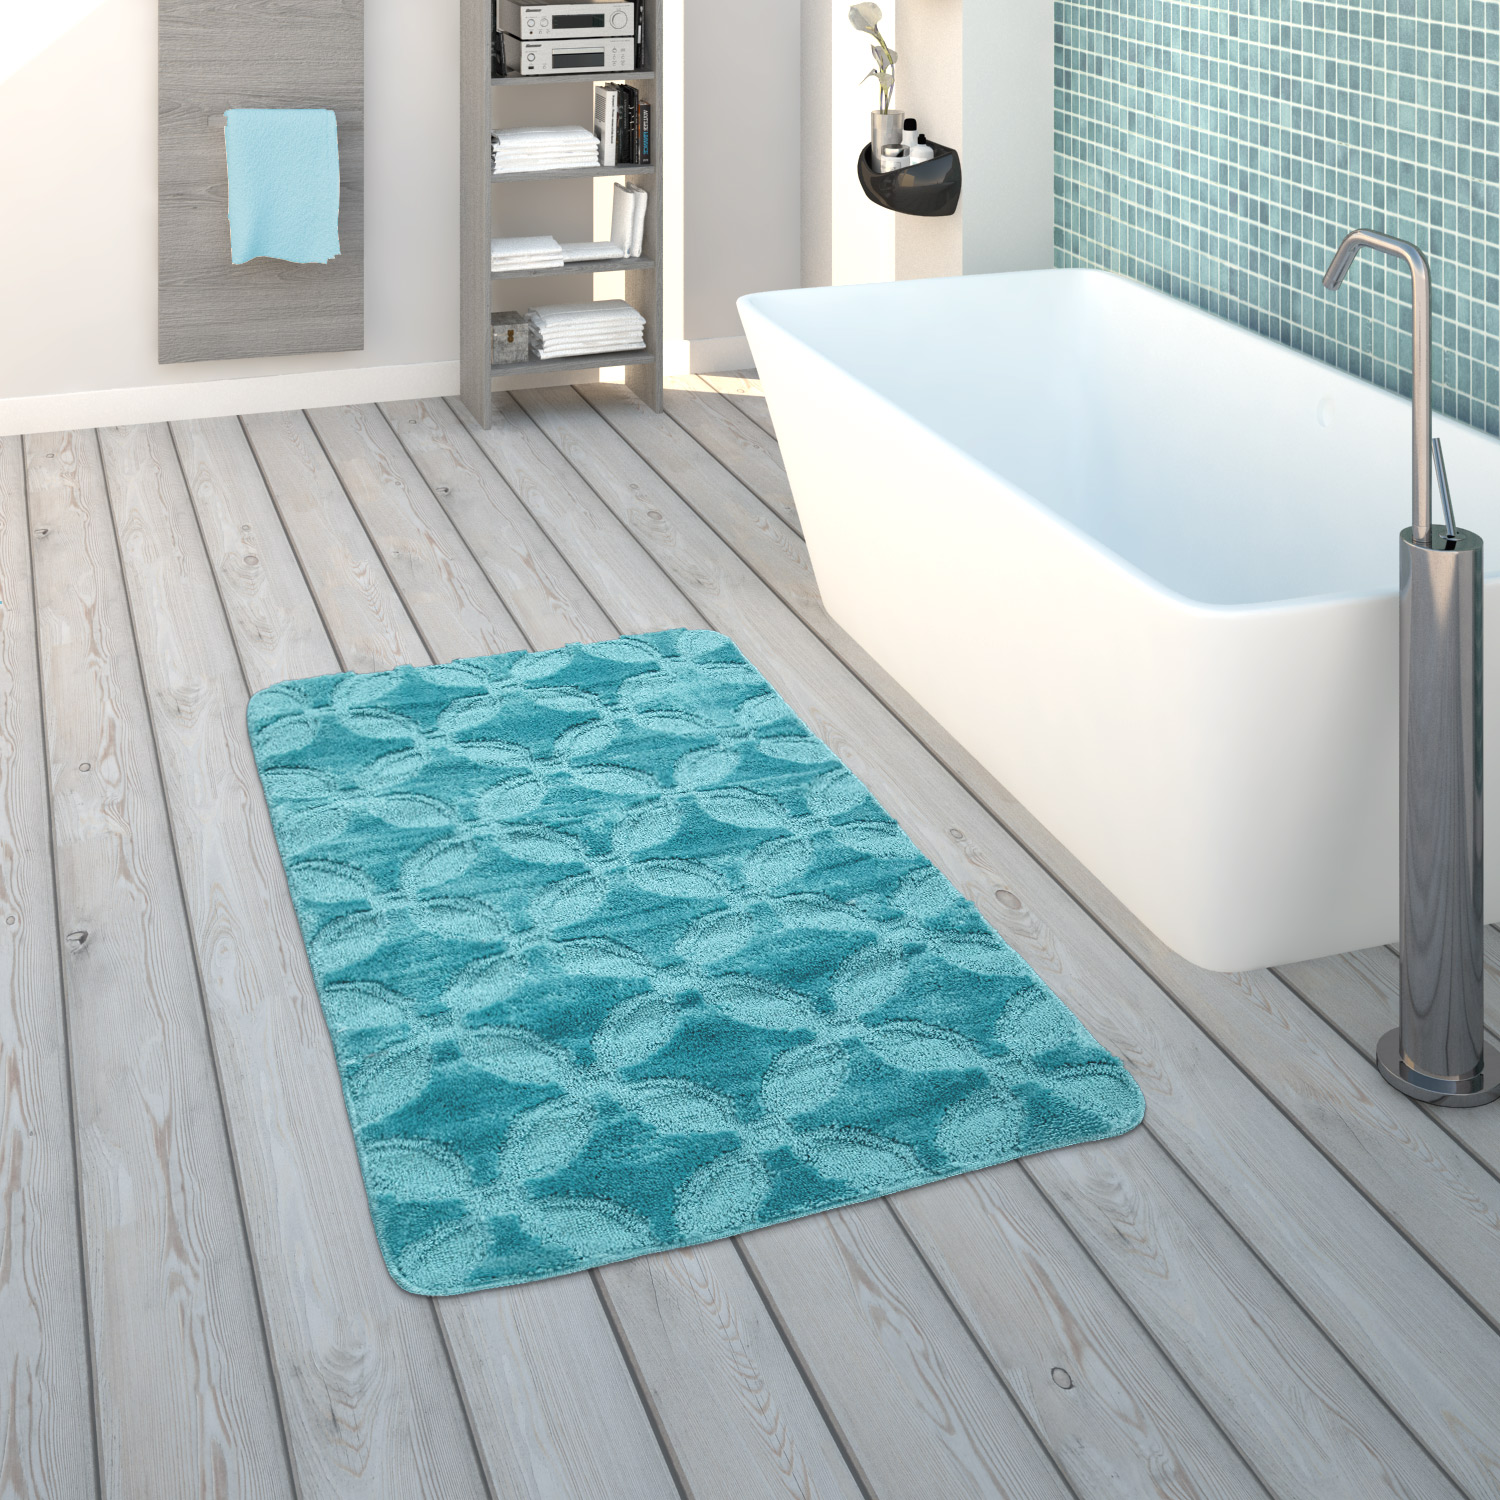 Bath Mat, Short-Pile Rug For Bathrooms Monochrome Circle Pattern, In Turquoise